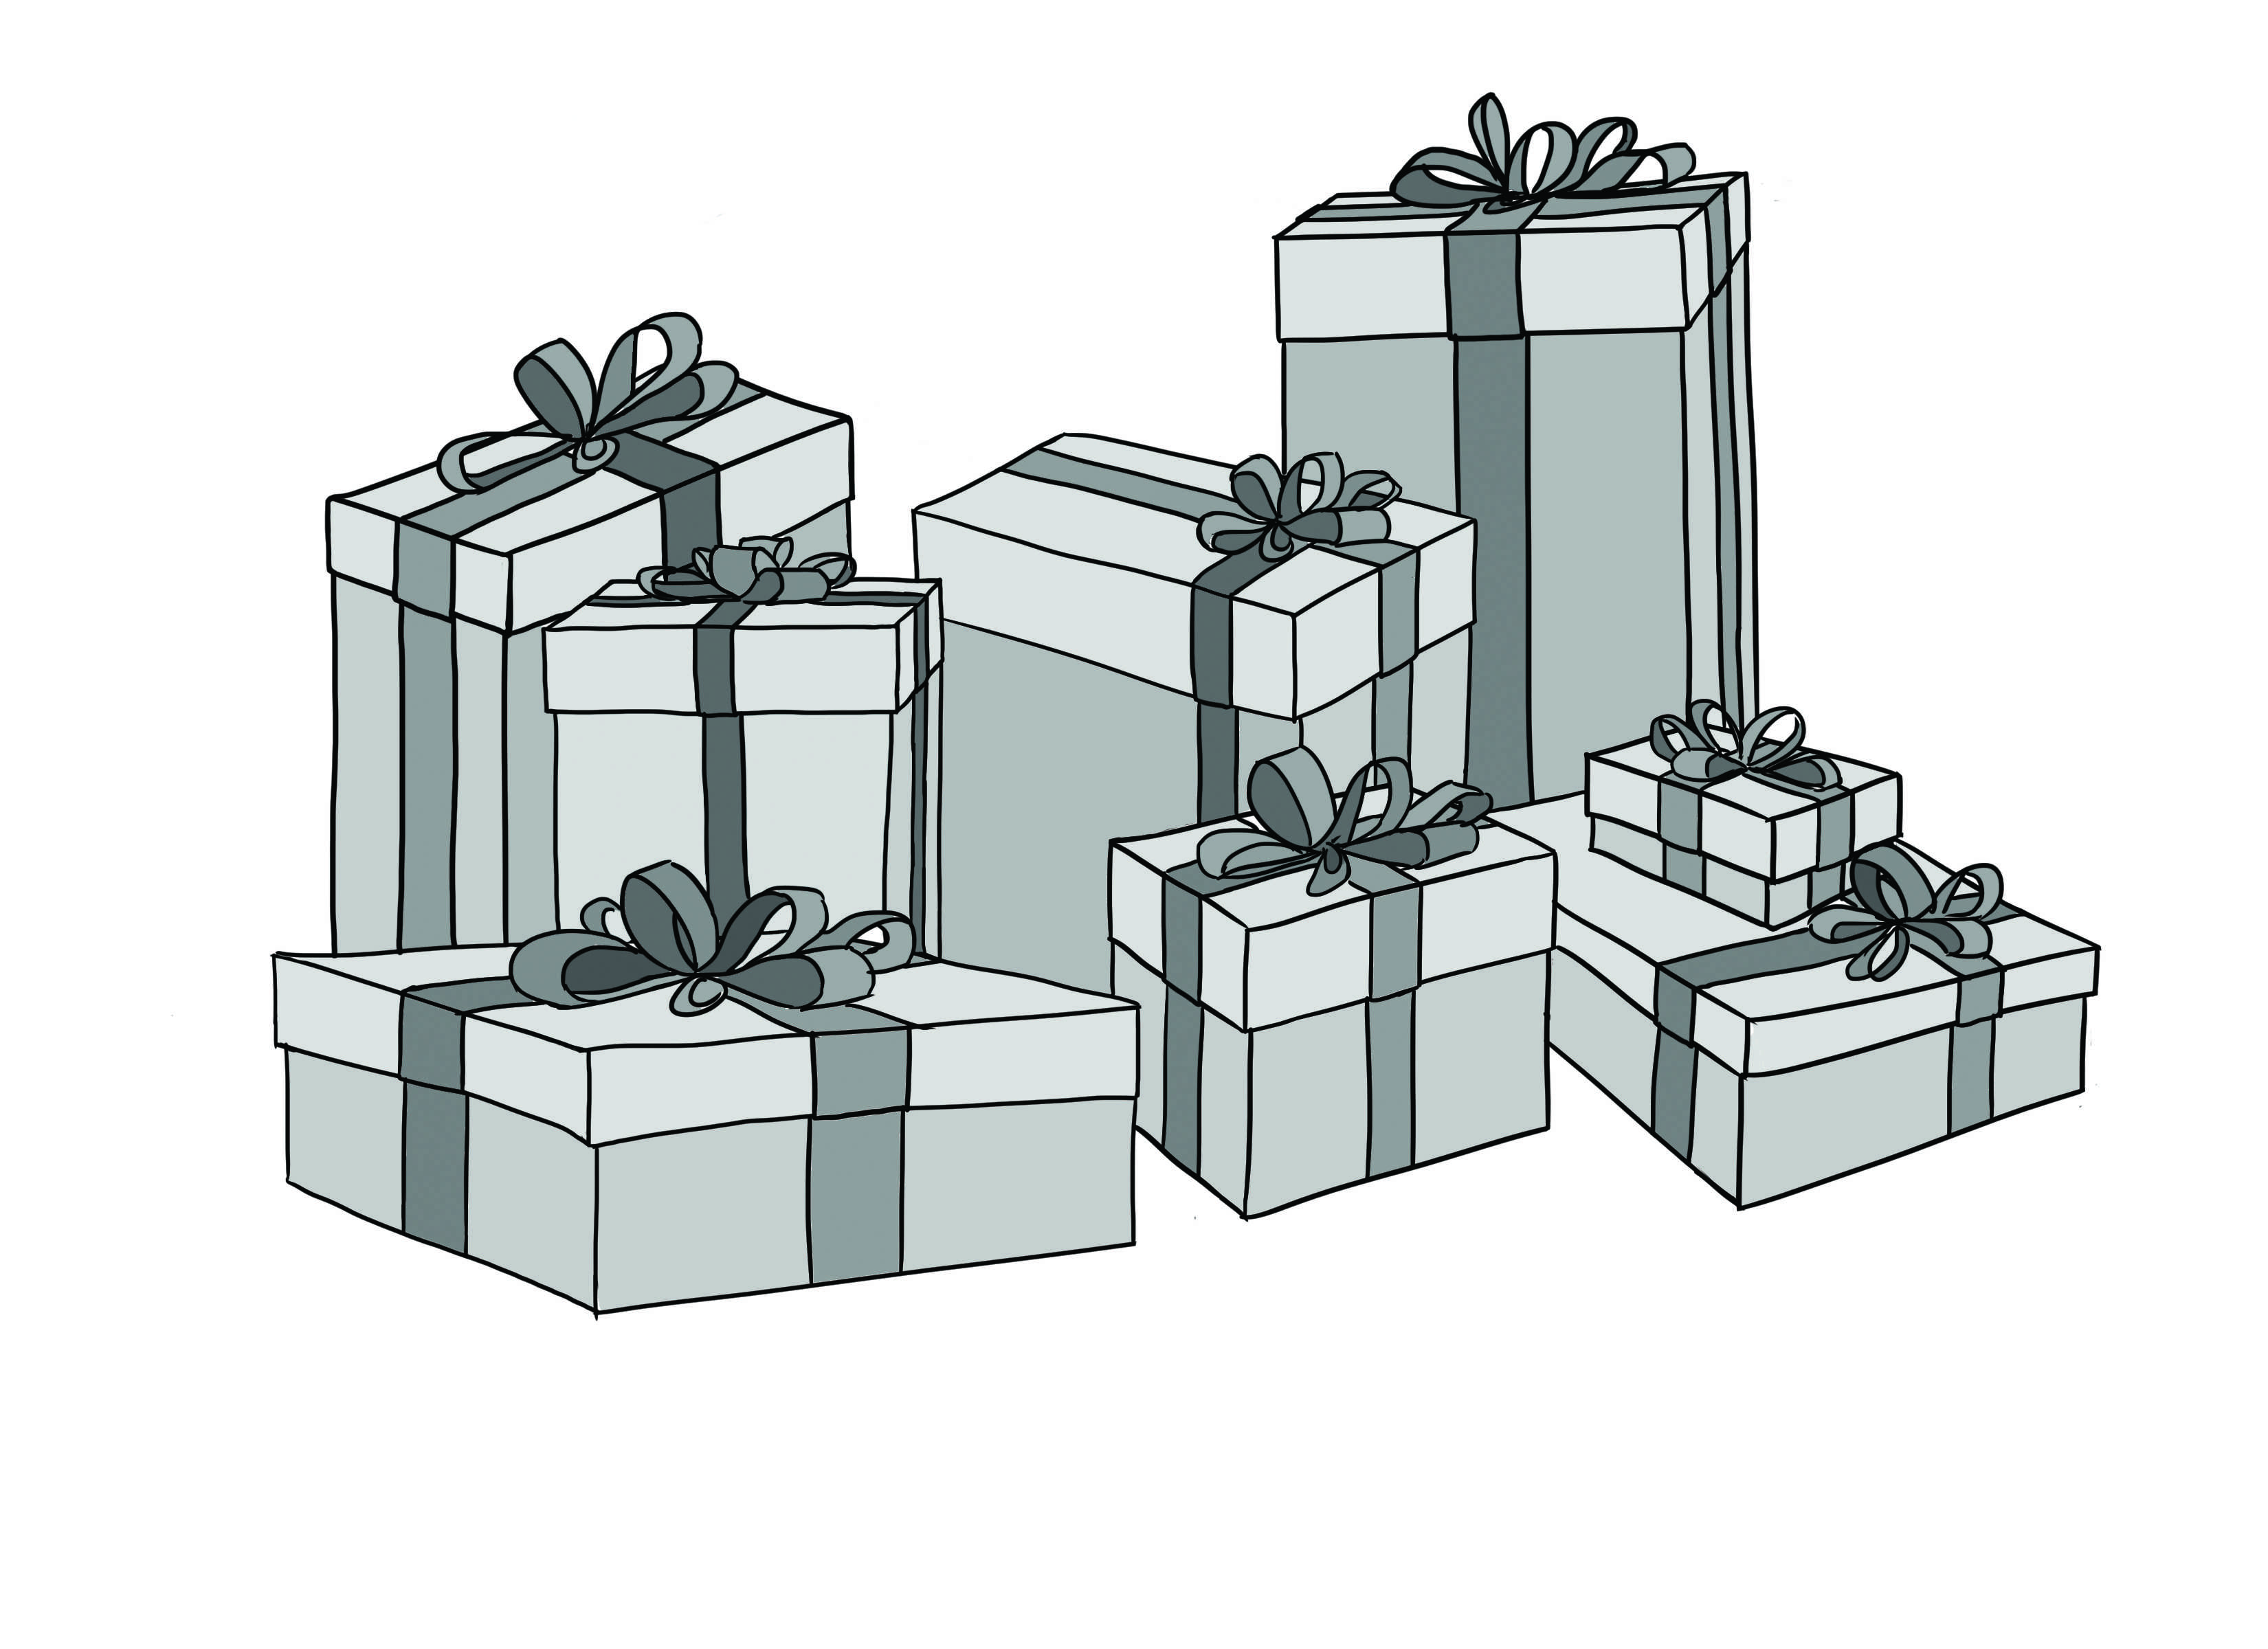 pile-of-presents_edited-1